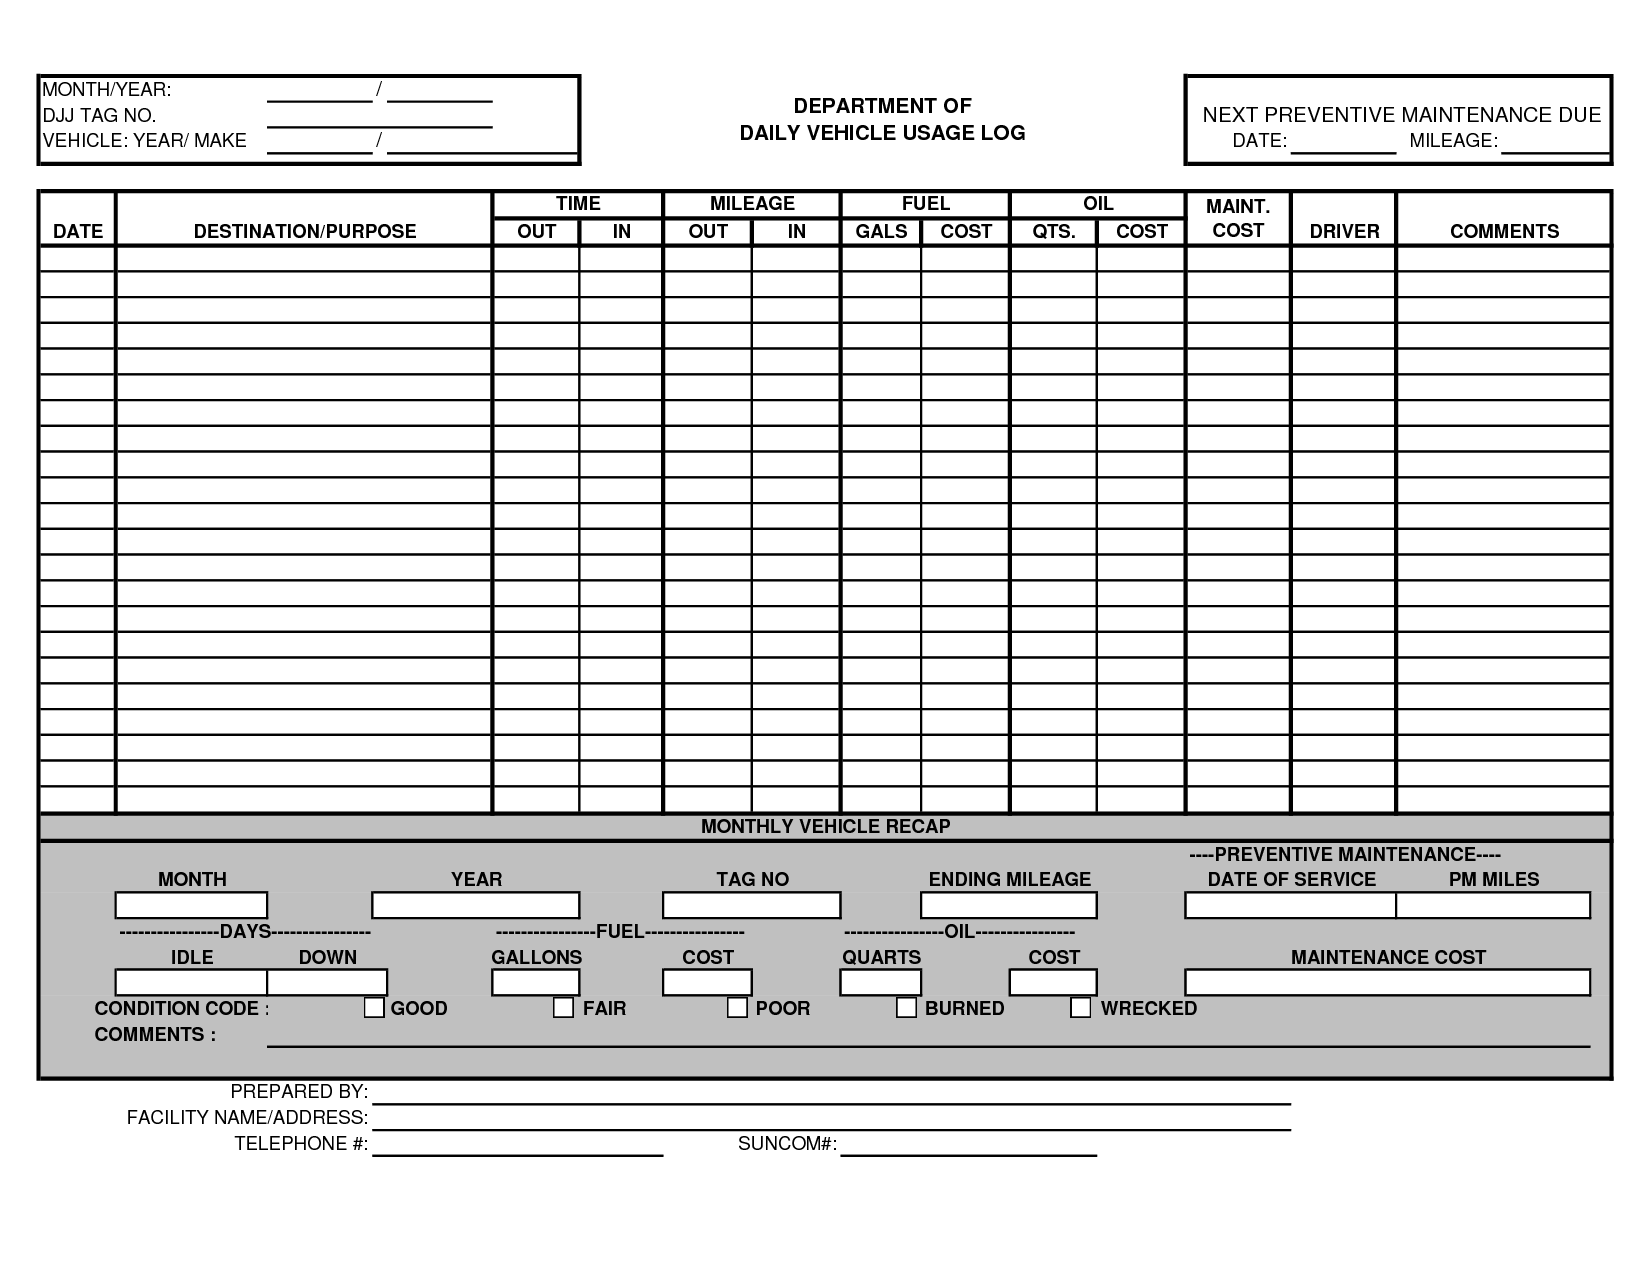 Vehicle Maintenance Log Template Excel Http://www.lonewolf Software.com